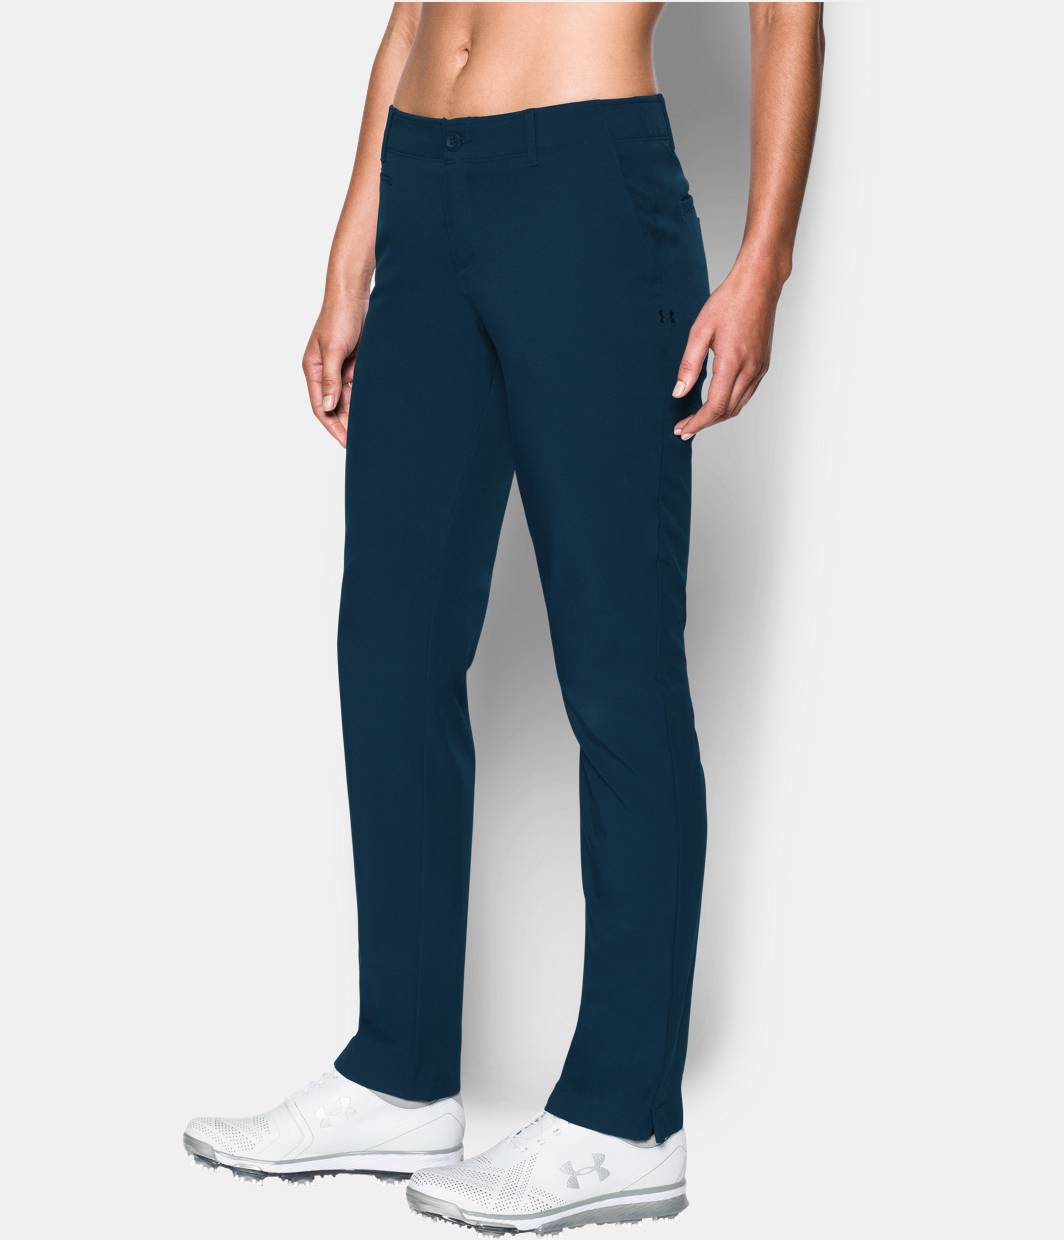 Amazing Details About Women39s Under Armour Tactical Patrol Pant